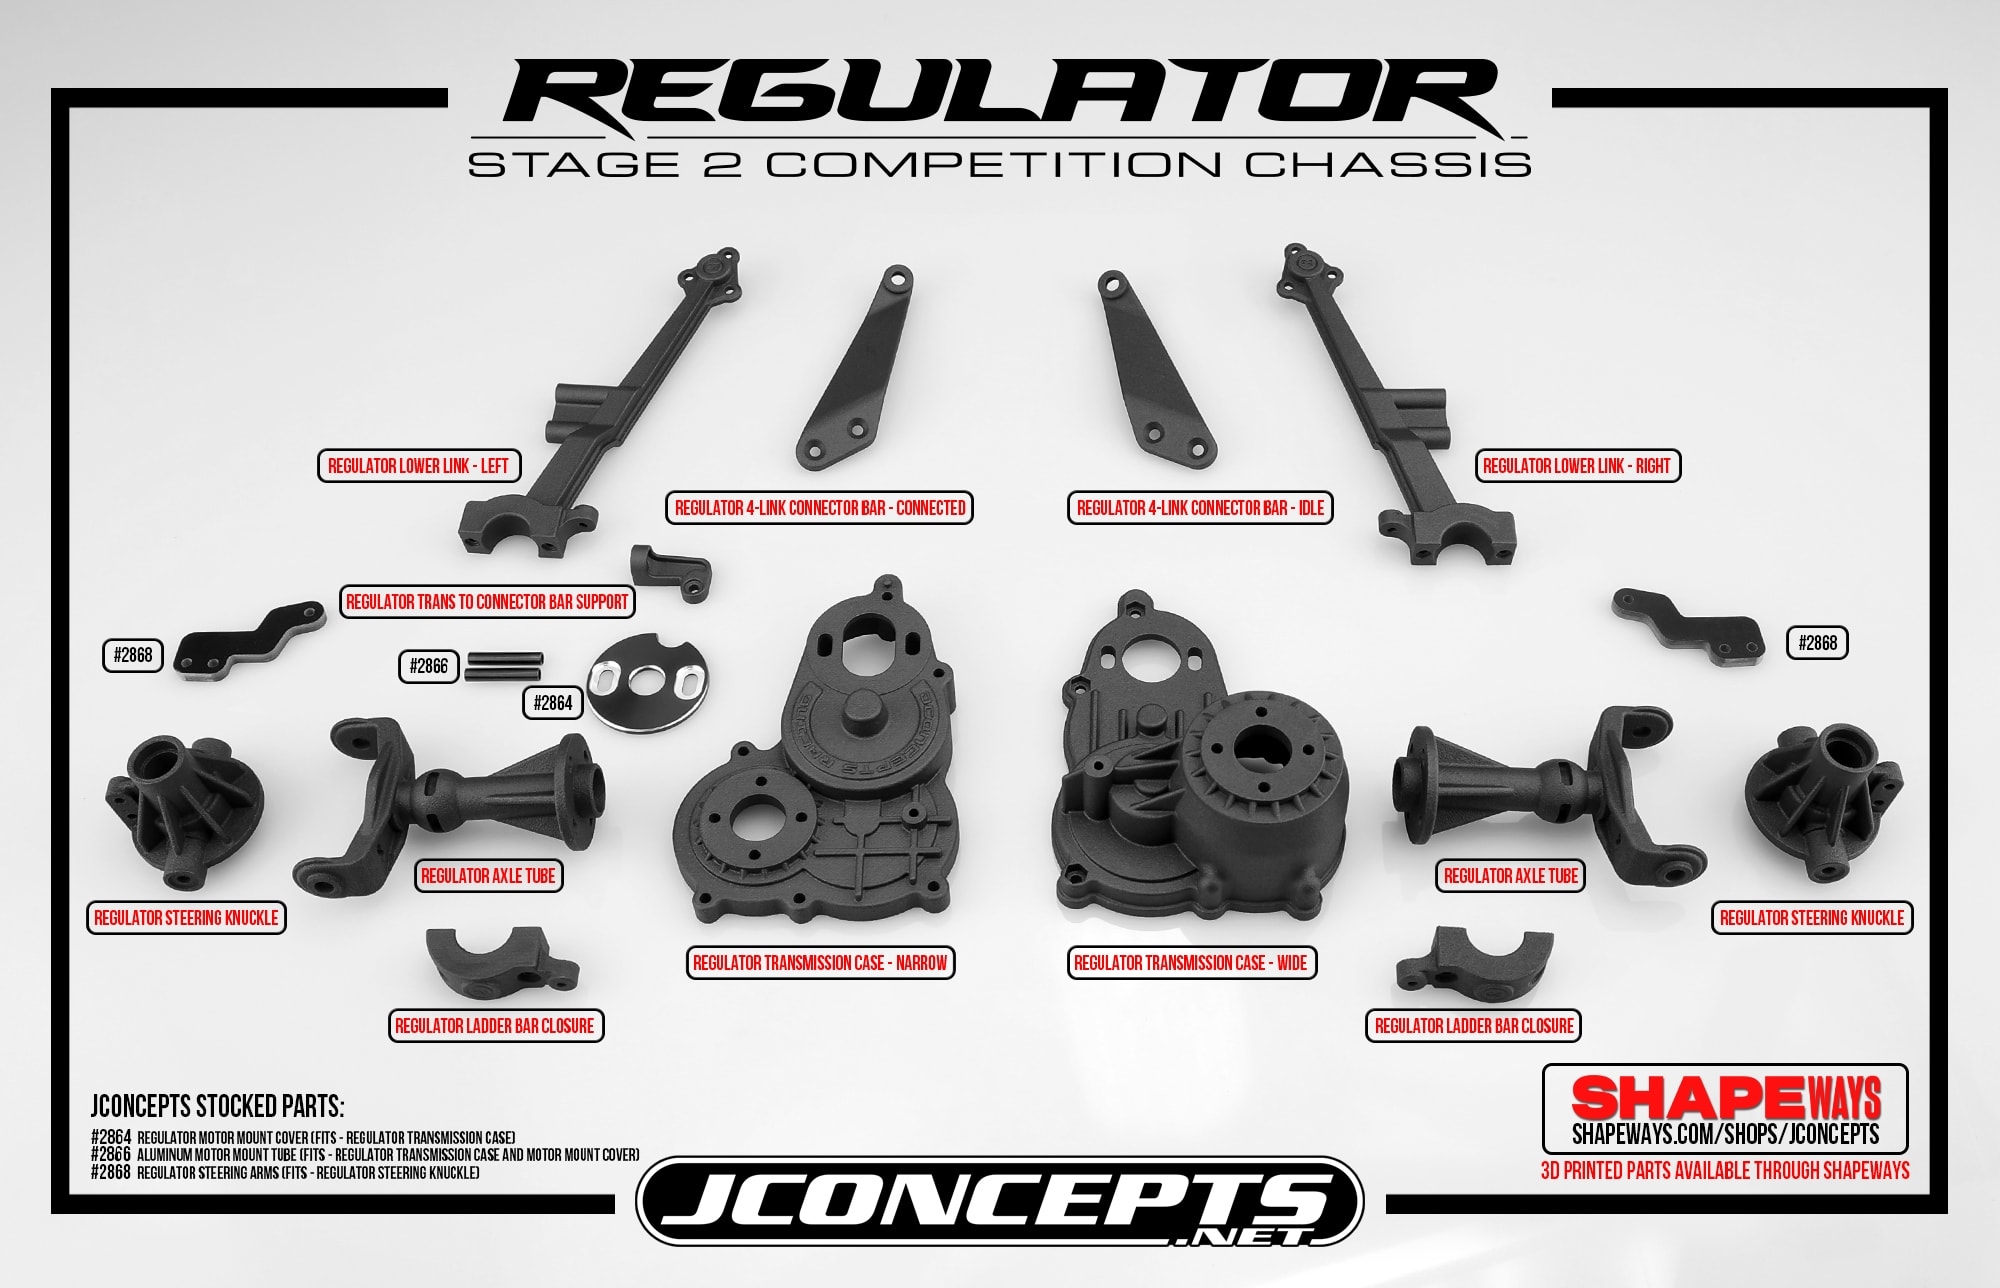 JConcepts Releases Option Parts for the Regulator Monster Truck Conversion Kit